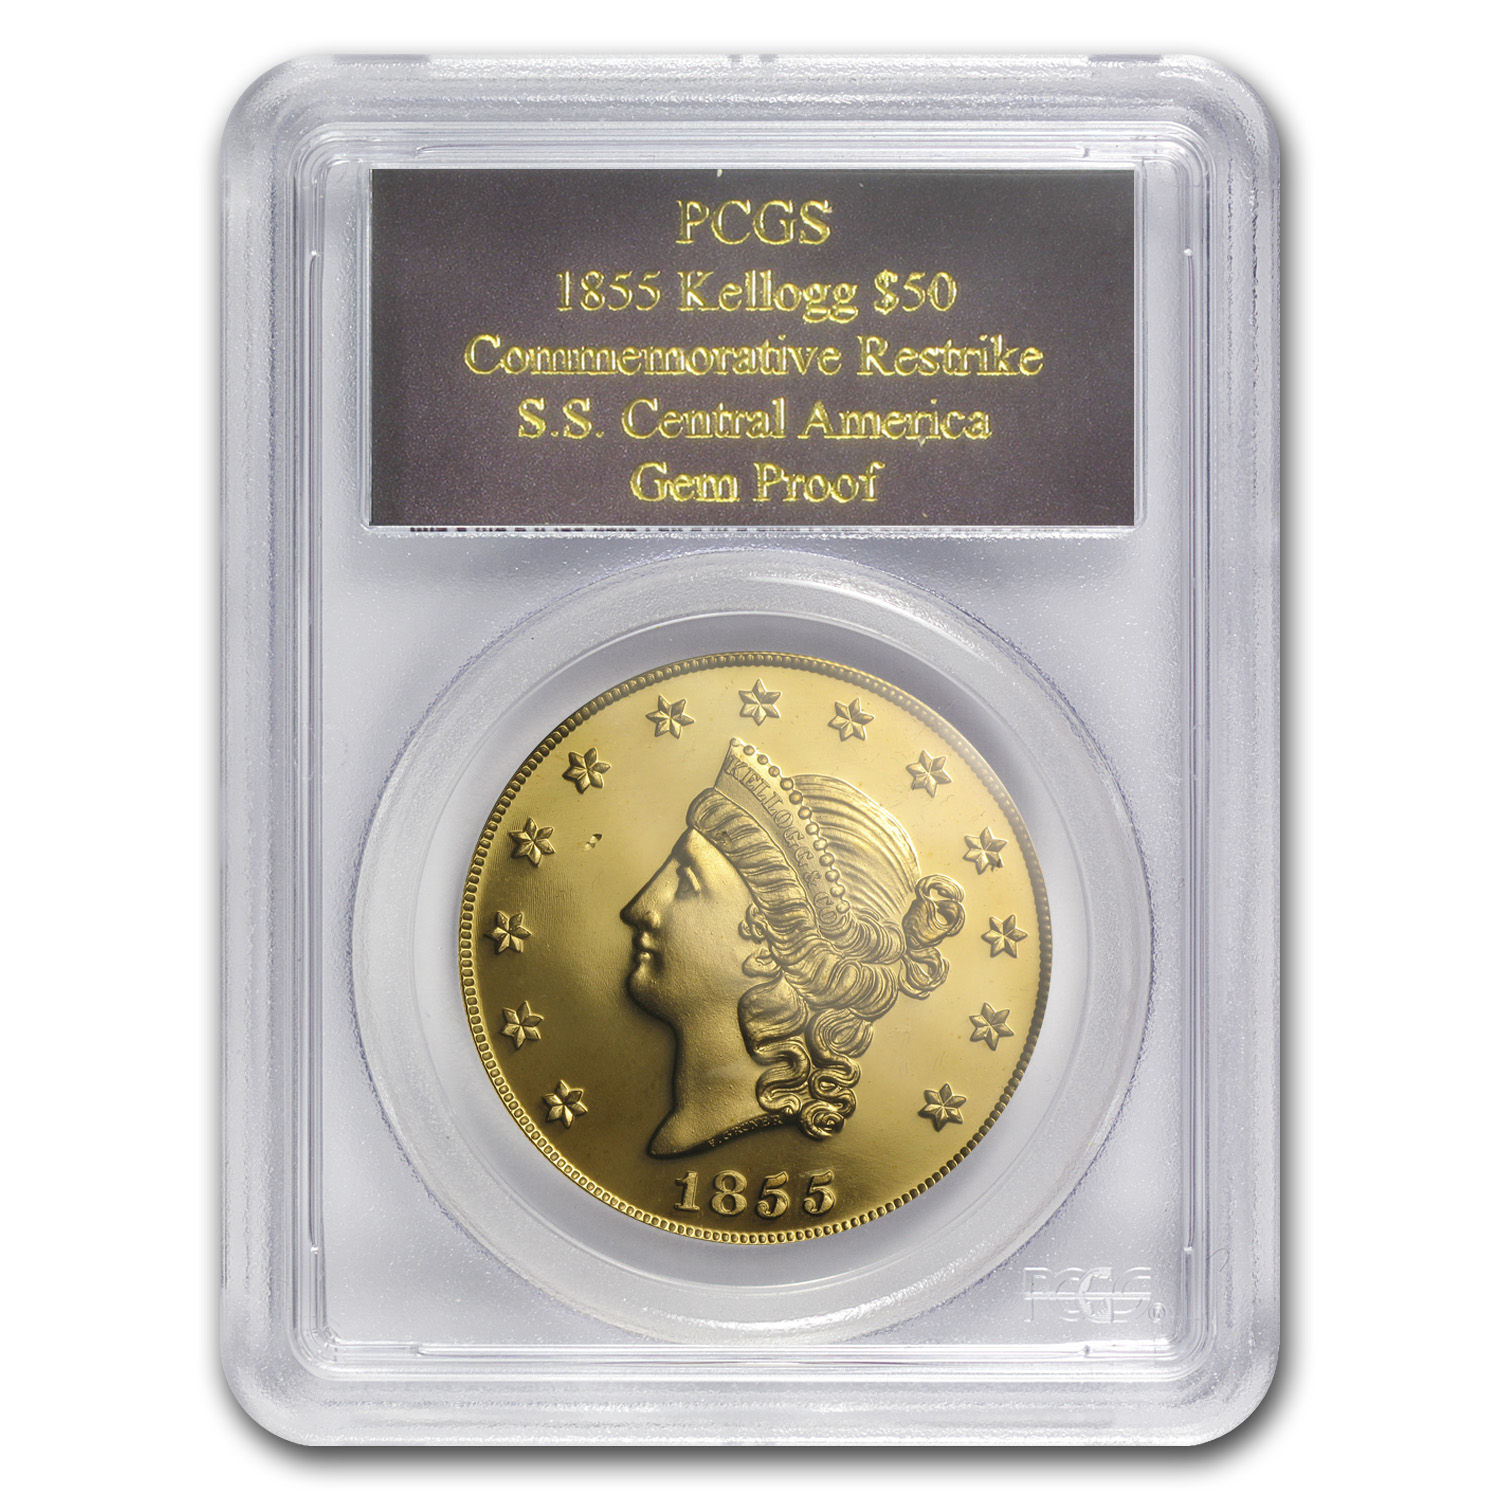 2.419 oz Gold Round - $50 Kellogg Restrike (PCGS GEM Proof)